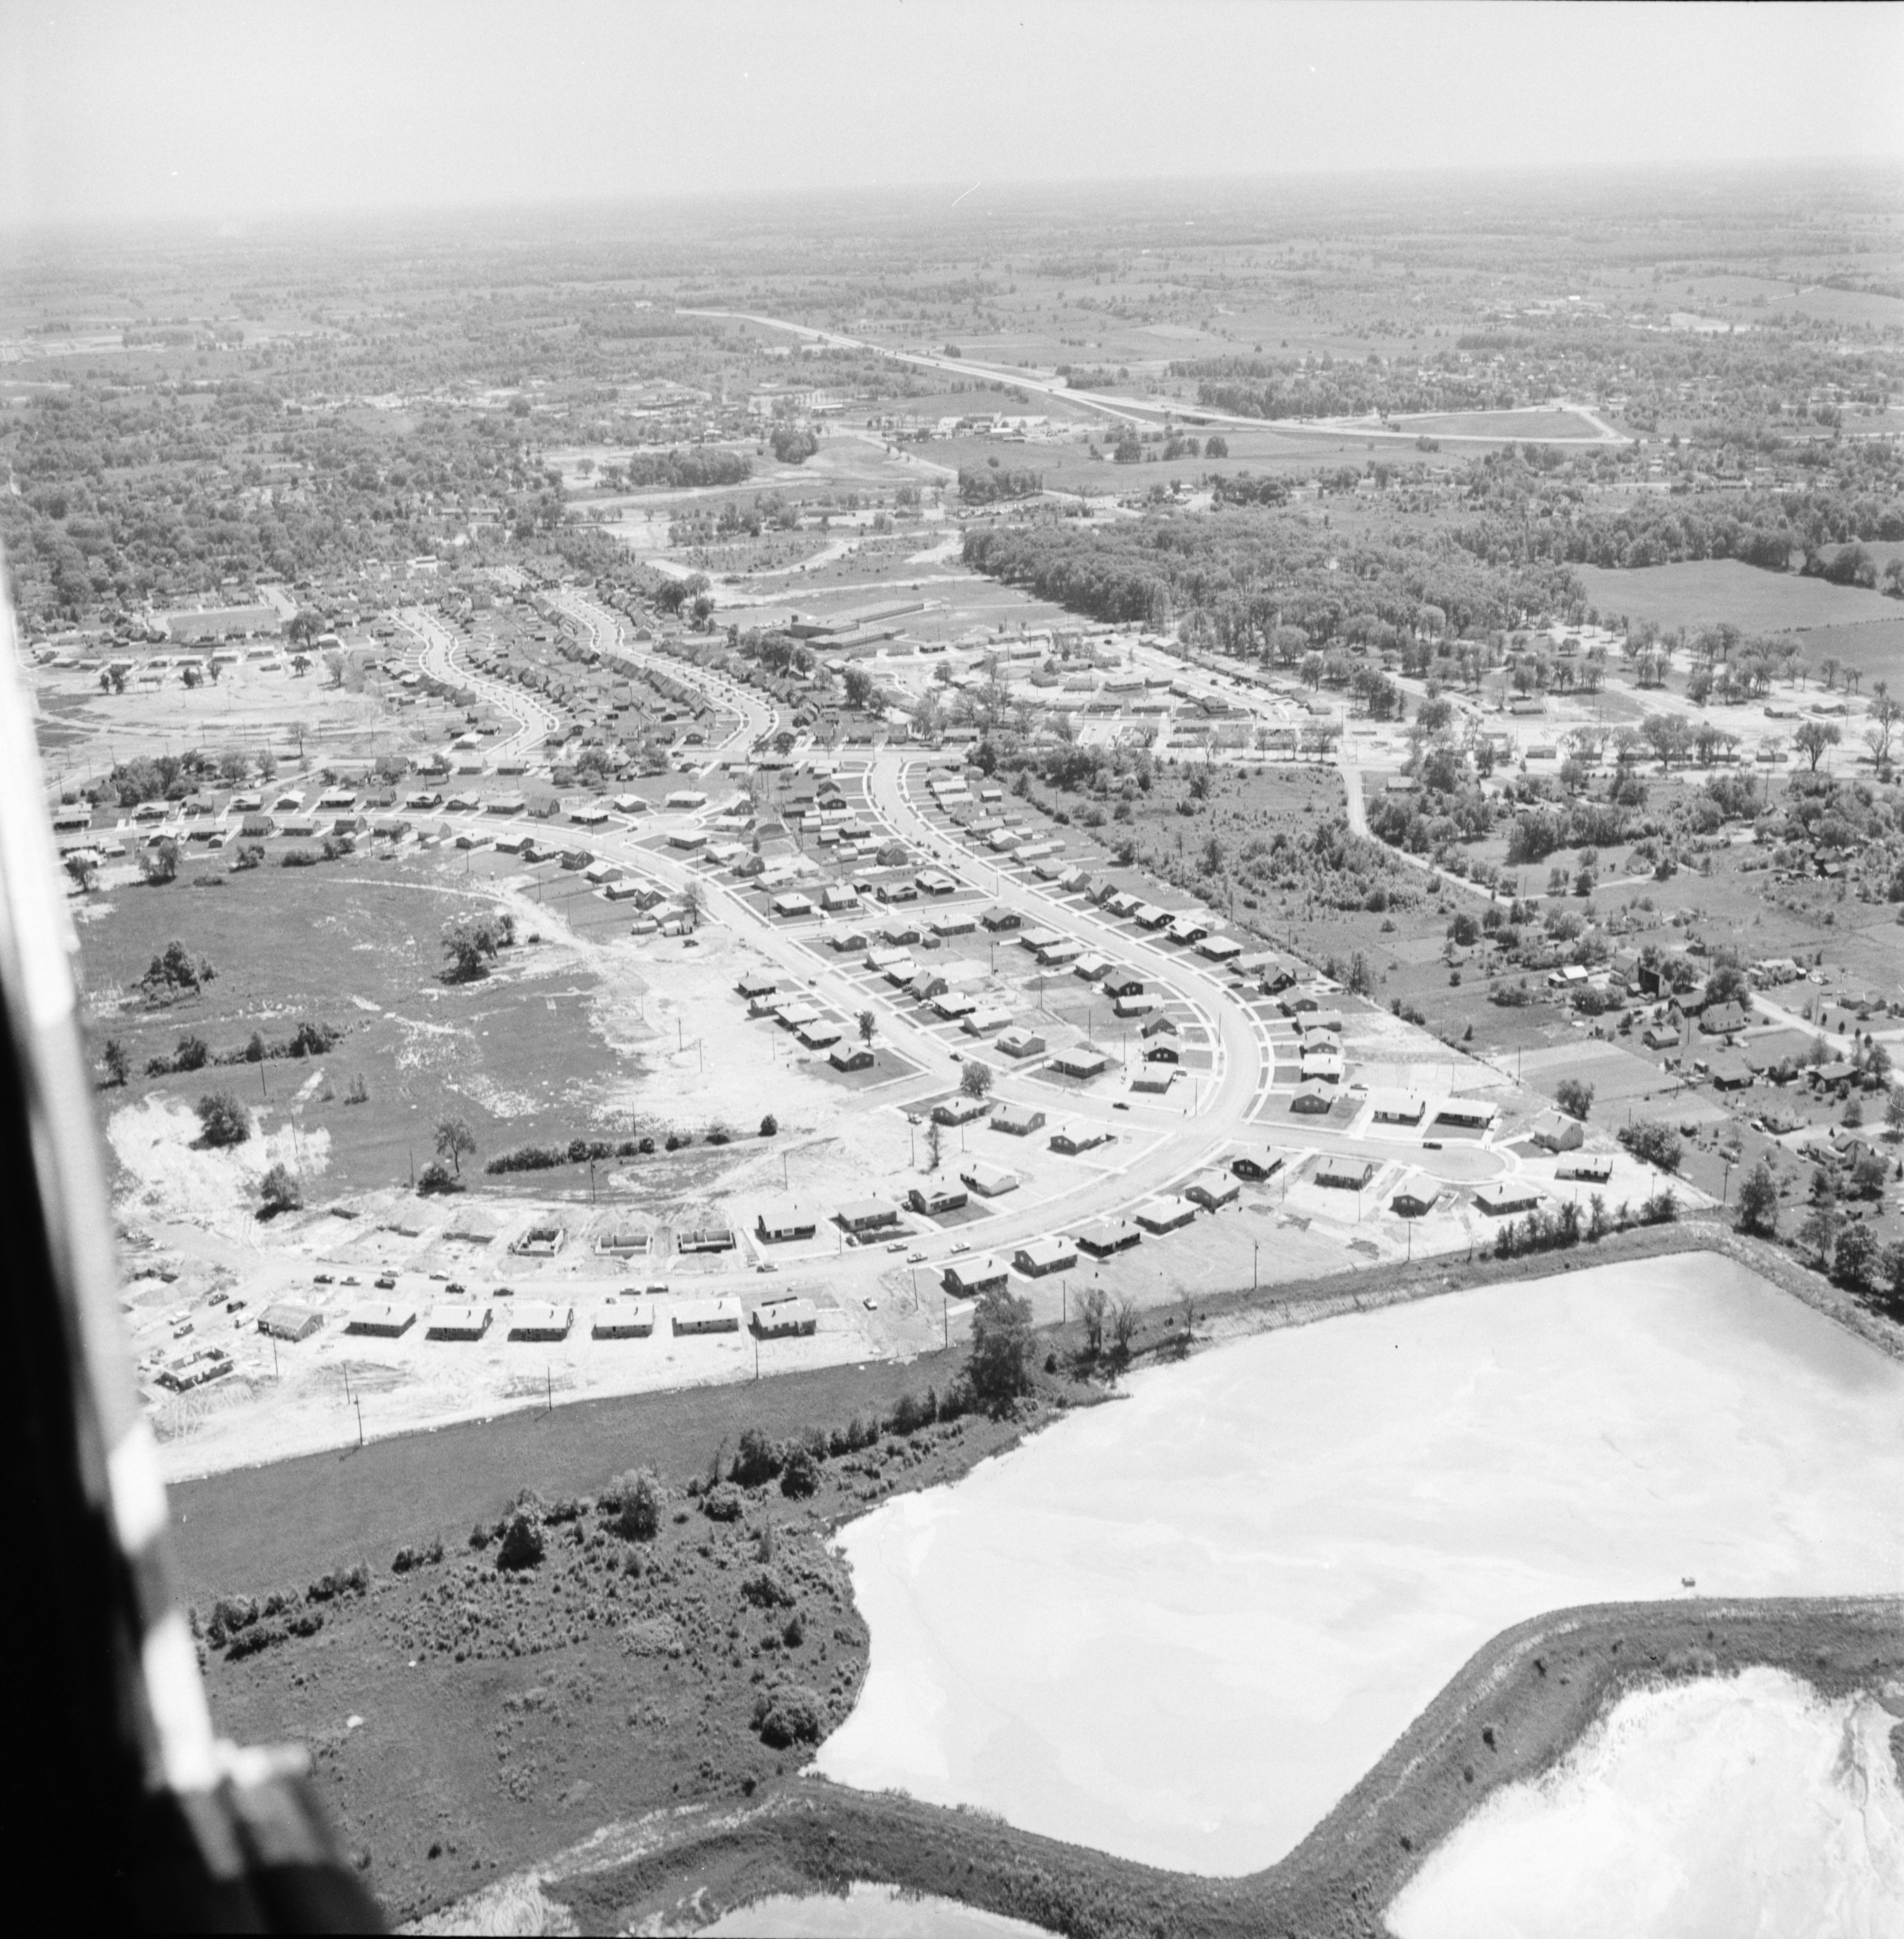 Aerial Photograph of Arbor Heights Subdivision, July 1957 image